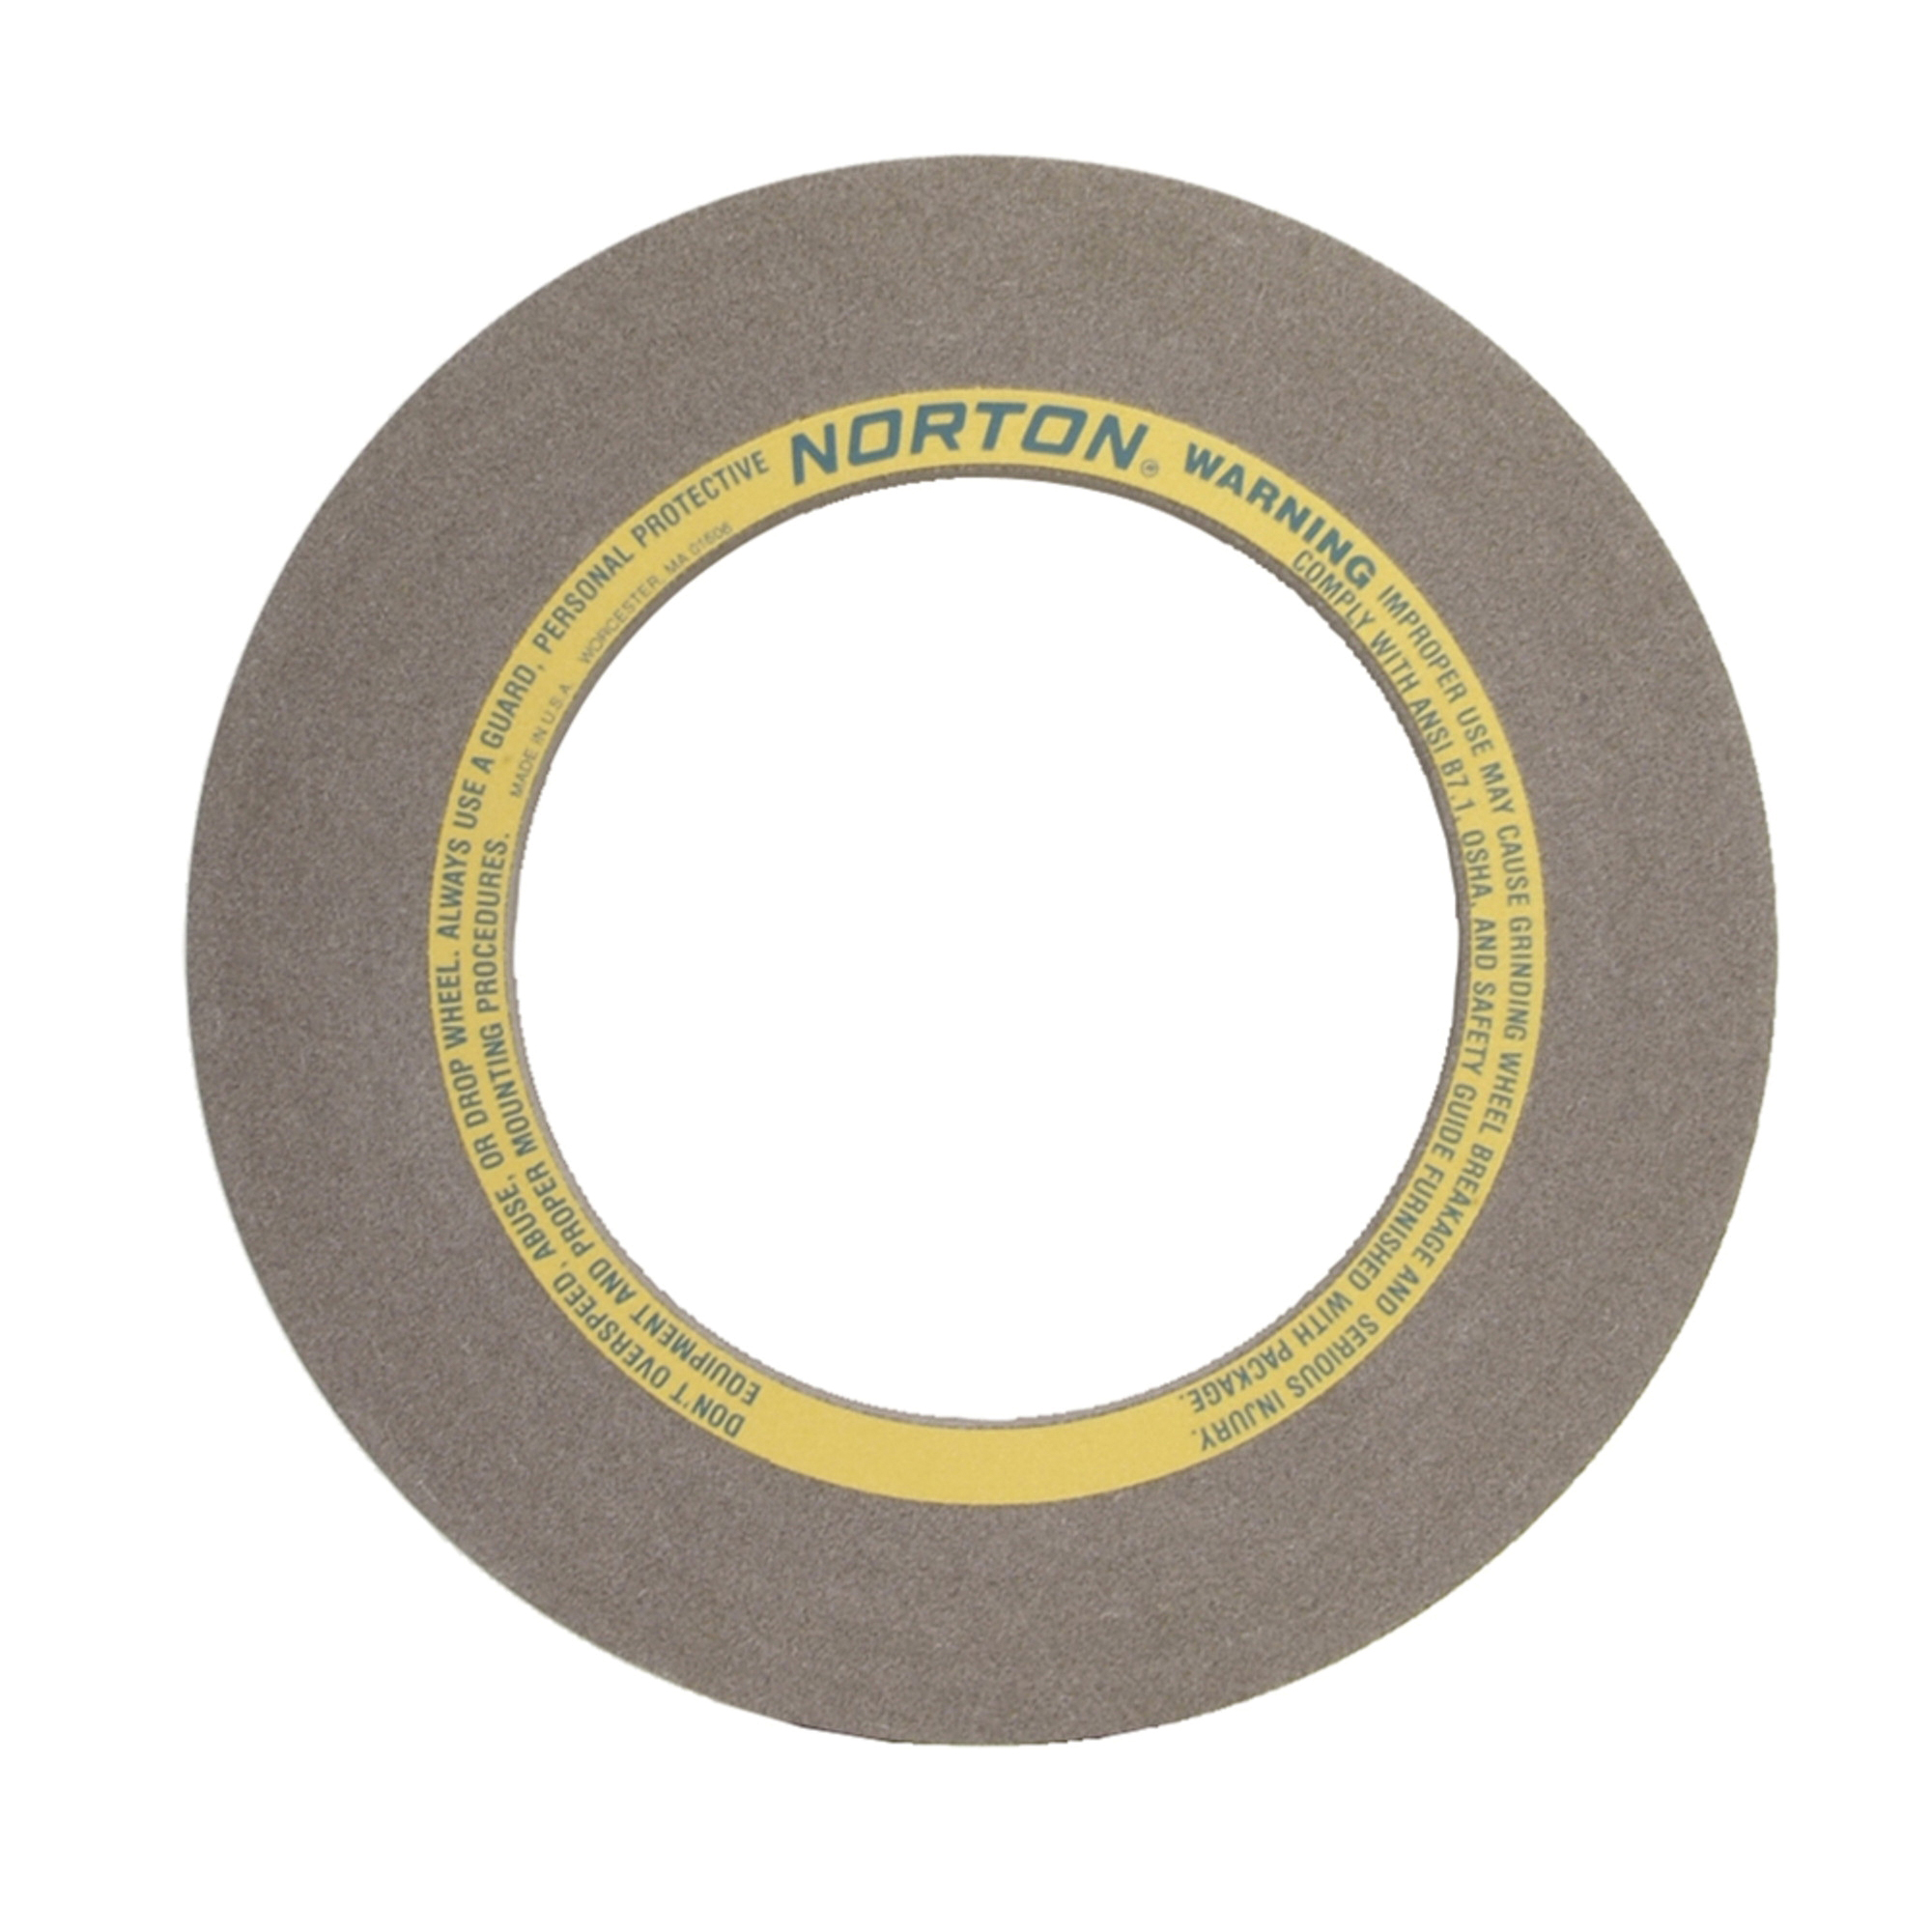 Norton® 69083166549 32A Straight Centerless Grinding Wheel, 24 in Dia x 10 in THK, 305 mm Center Hole, 54 Grit, Aluminum Oxide Abrasive